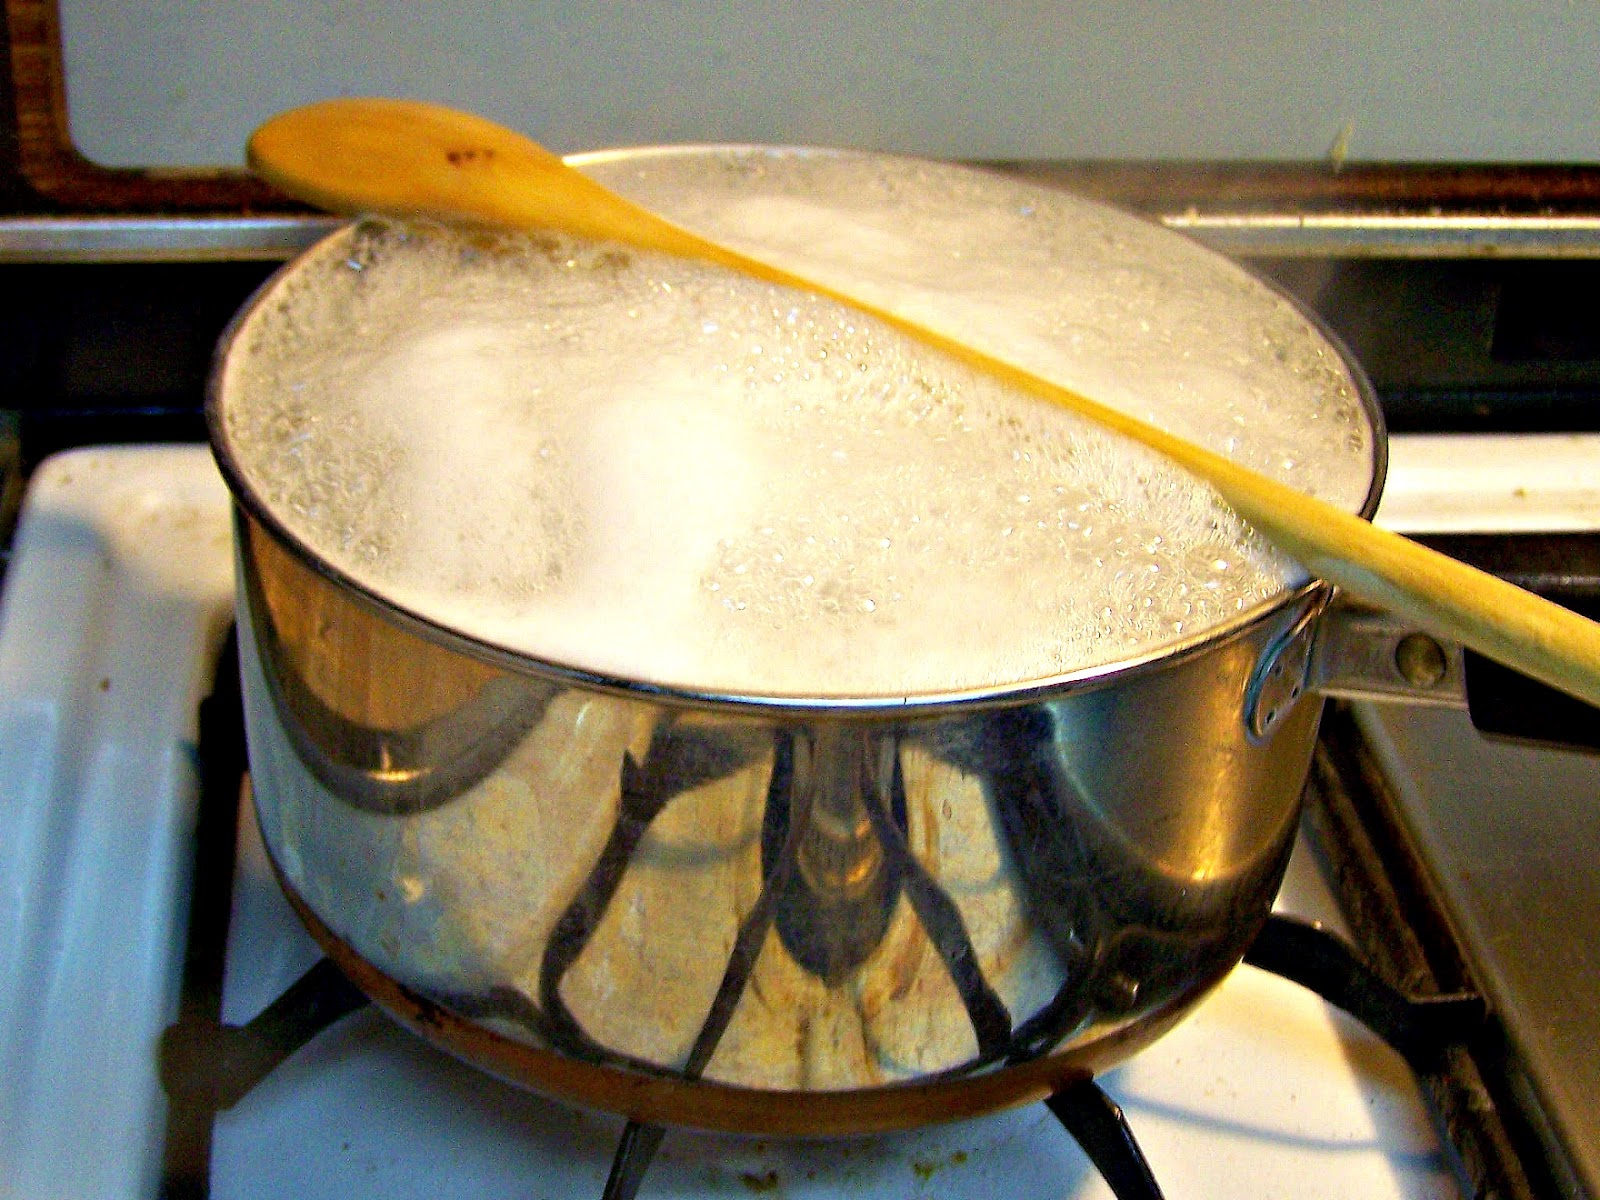 4. OH-AM-GEE it's about to overflow! No worries, put a wooden spoon over it